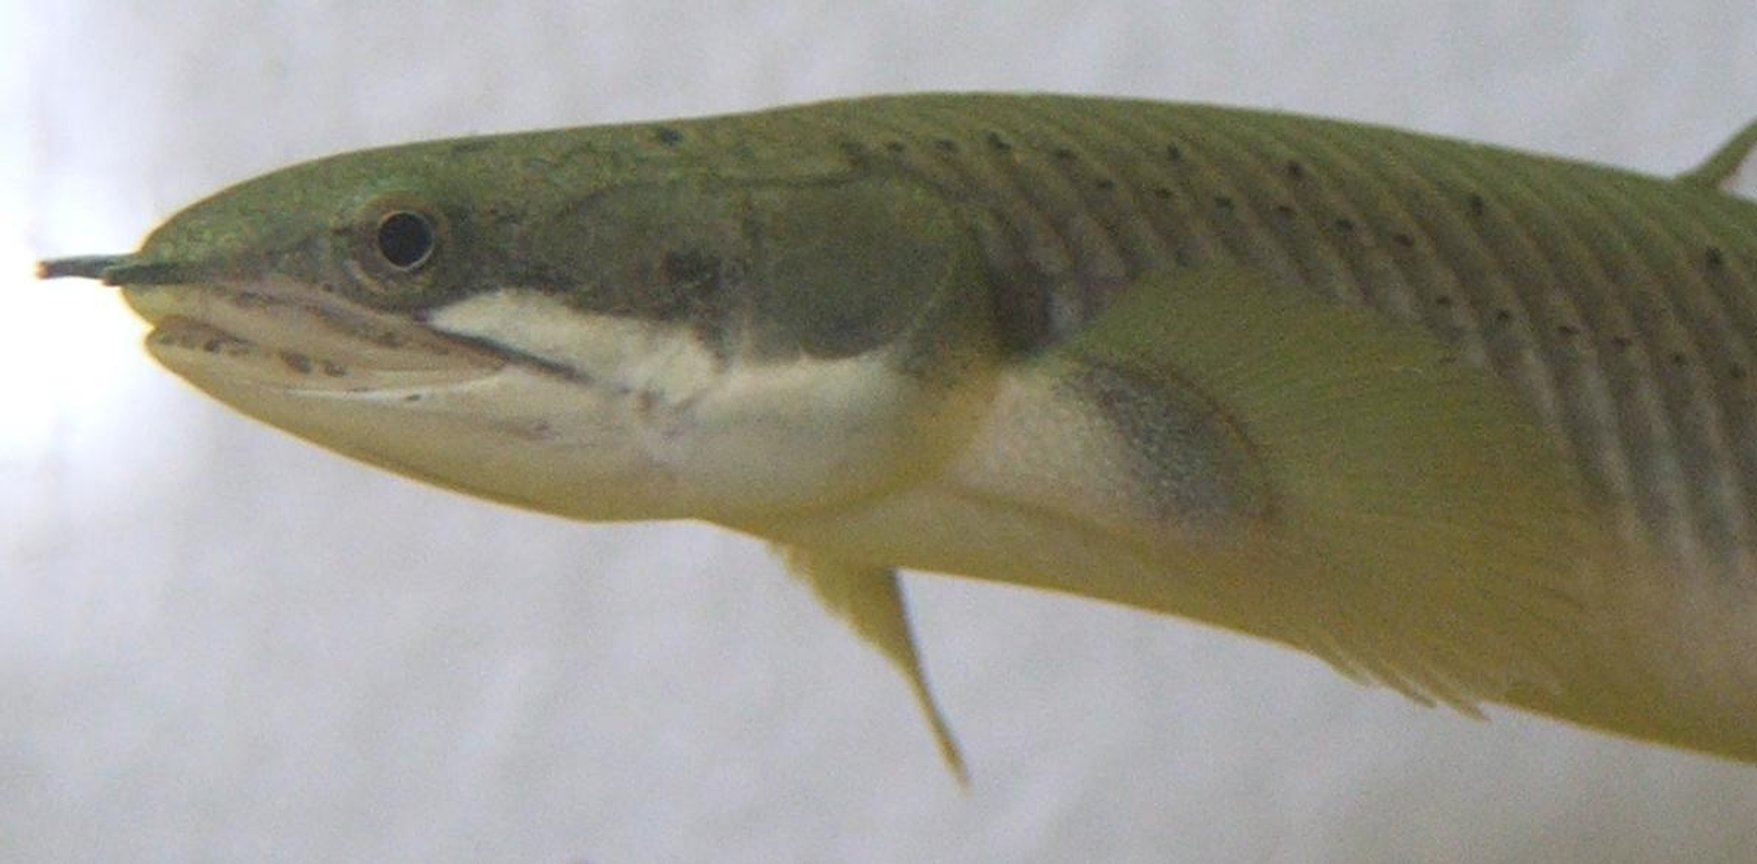 freshwater fish - polypterus senegalus - cuvier bichir - Polypterus Senegal 1 of 3 in my 200L